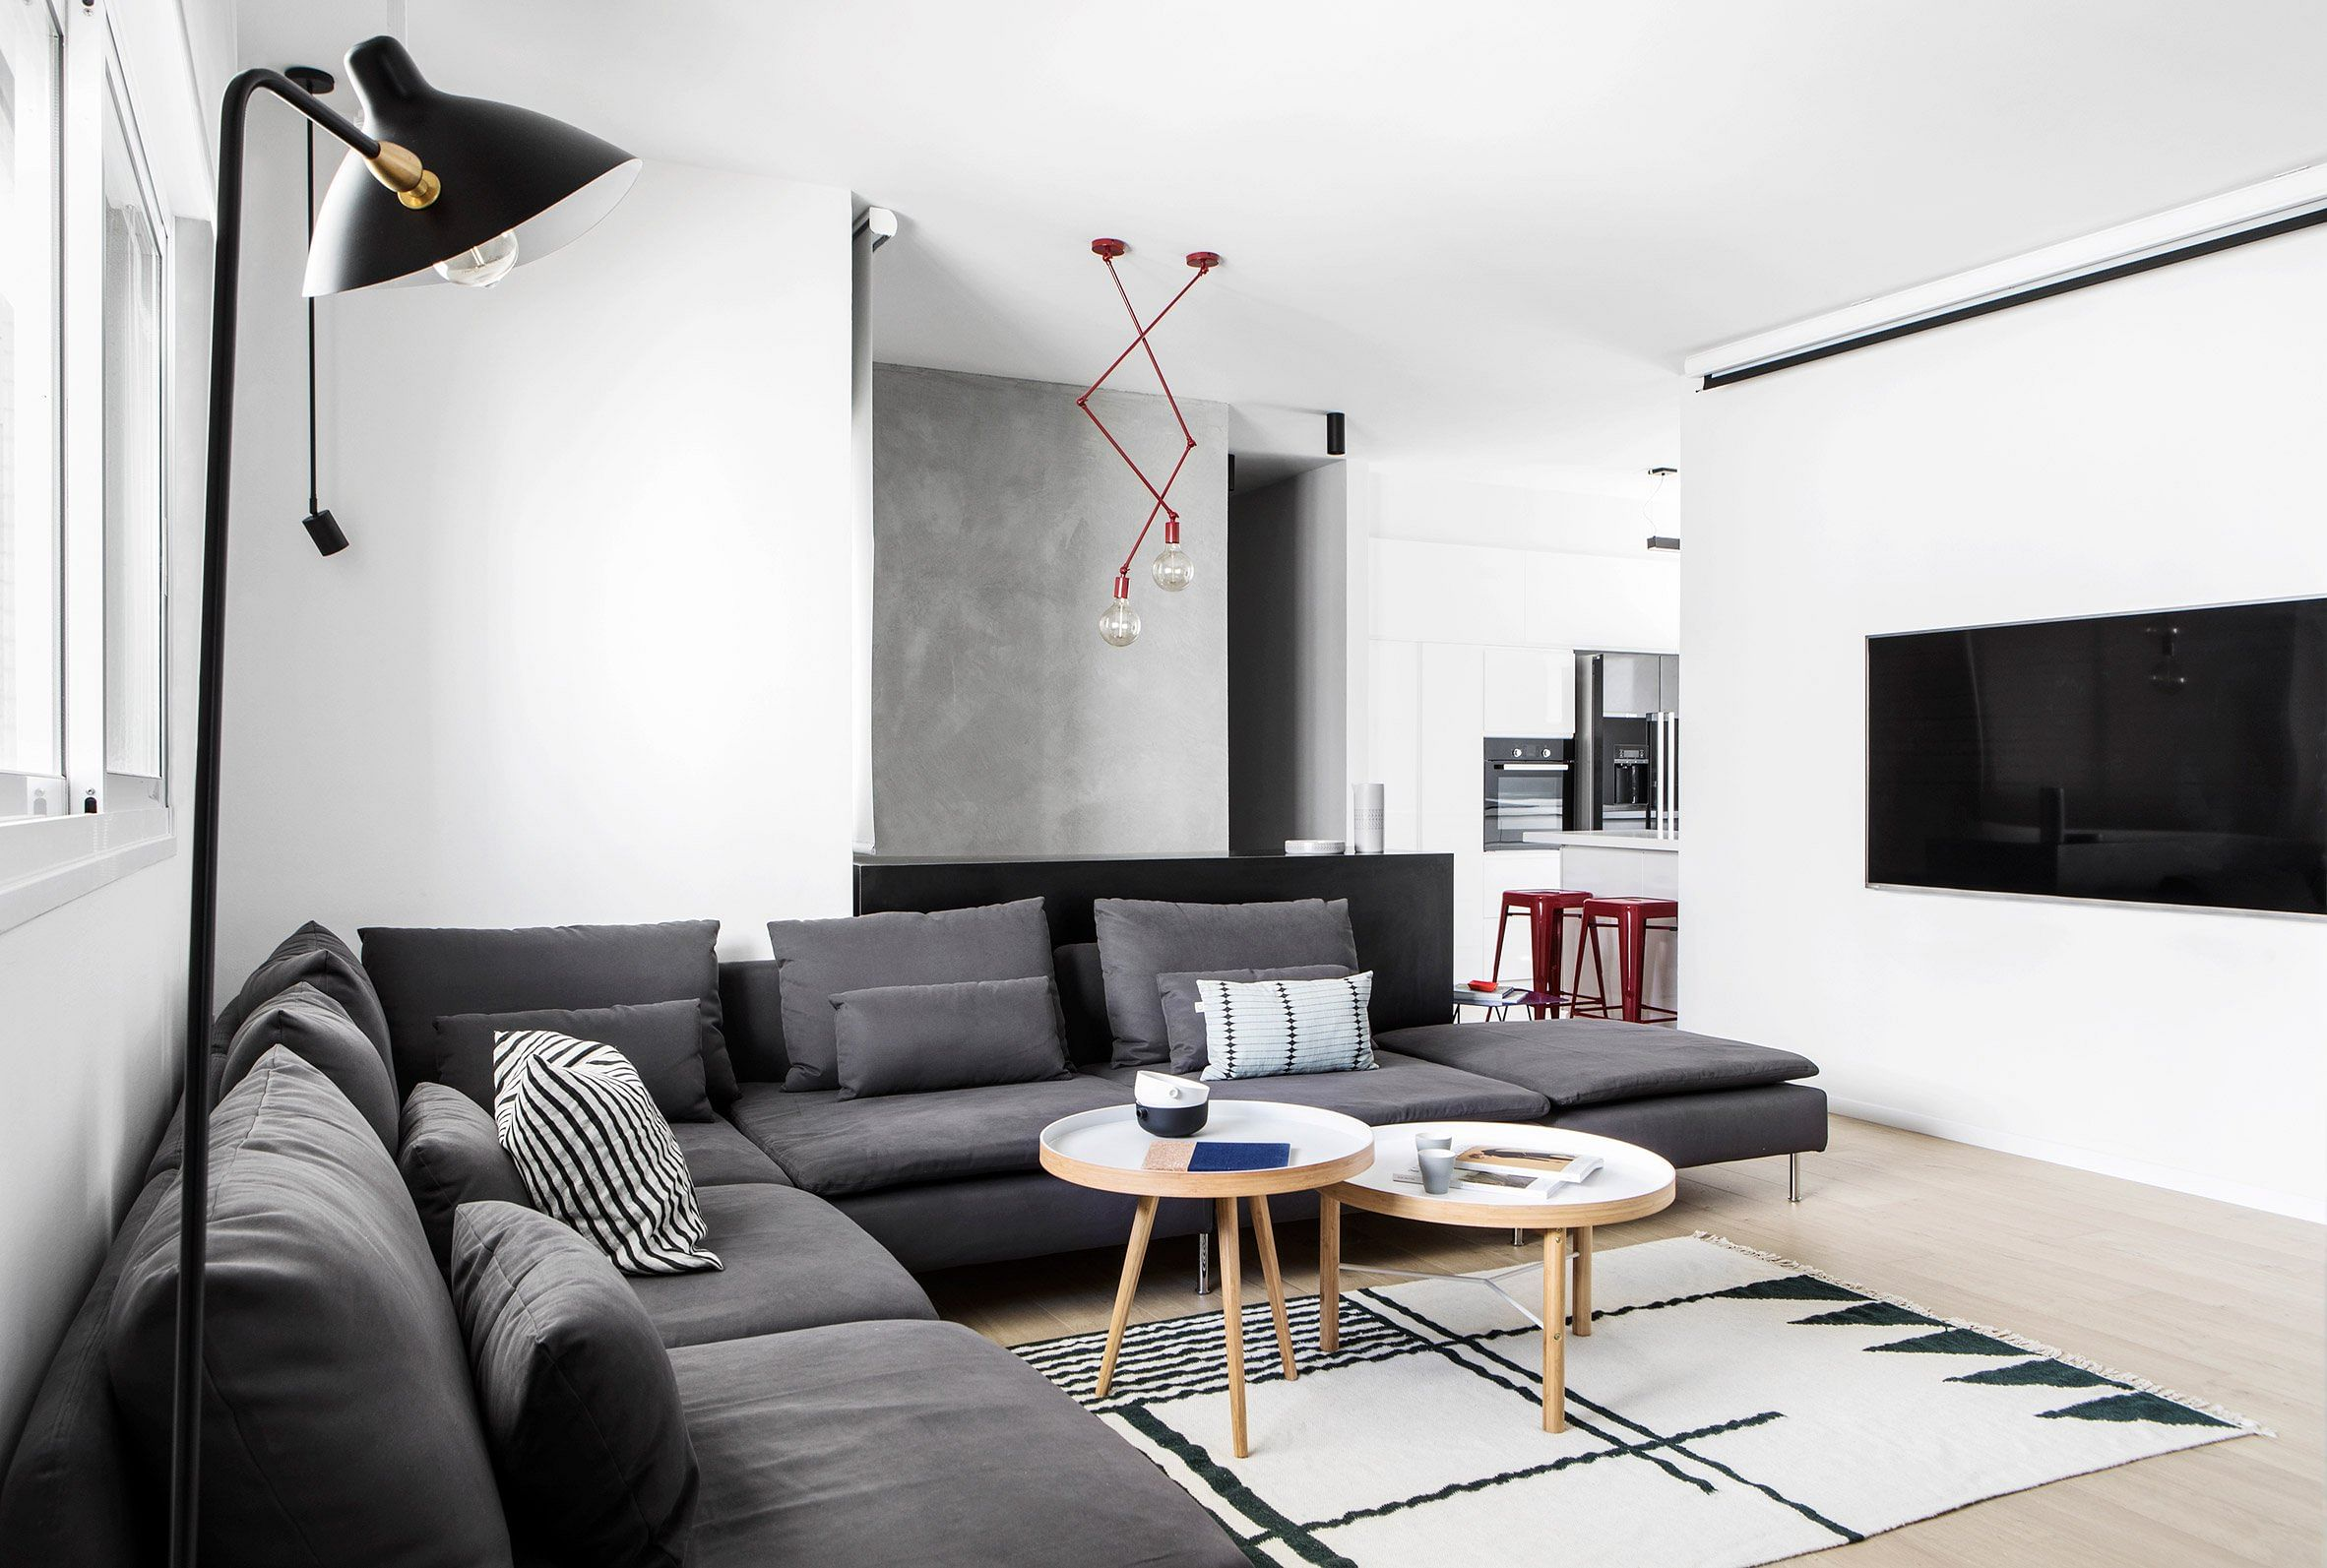 House Tour: A modern 240sqm duplex space featuring muted tones, geometric shapes and an industrial touch title=